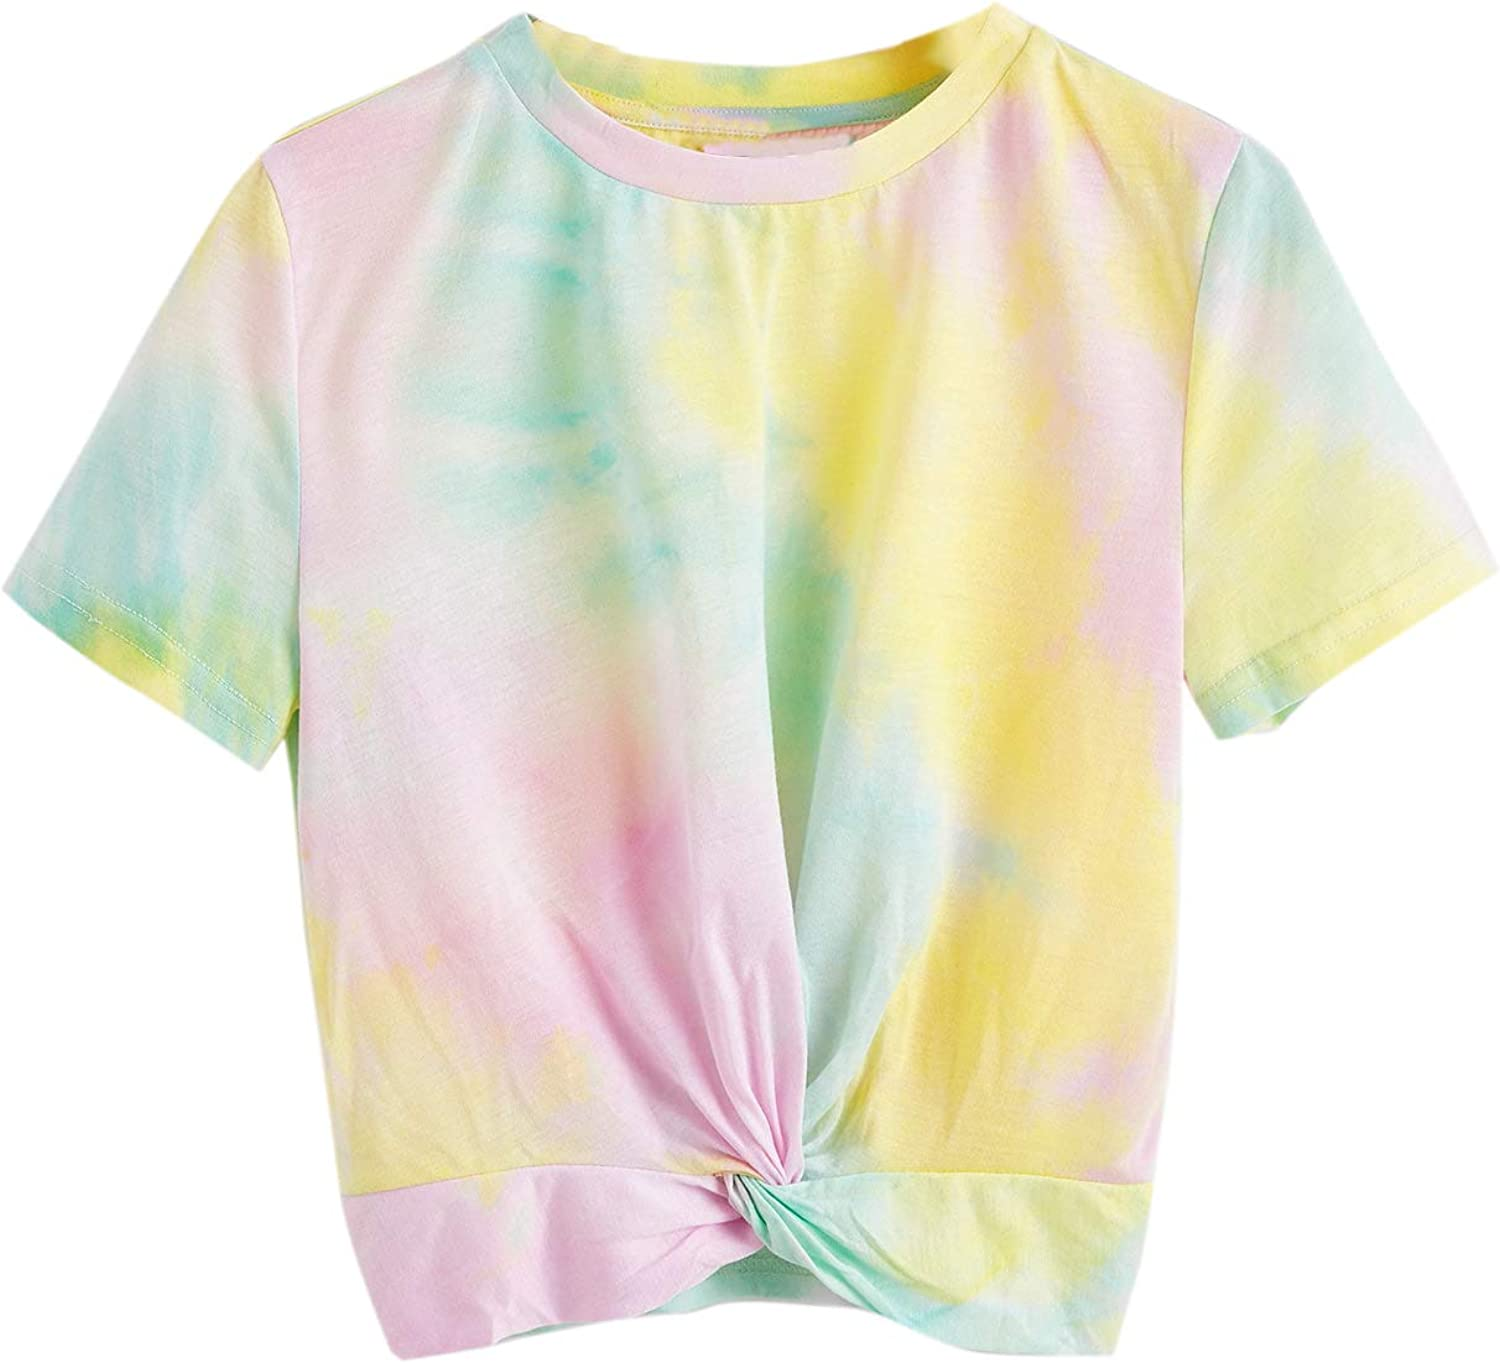 SweatyRocks Women's Twist Front Tie Dye Short Sleeve Crop Top T-Shirt